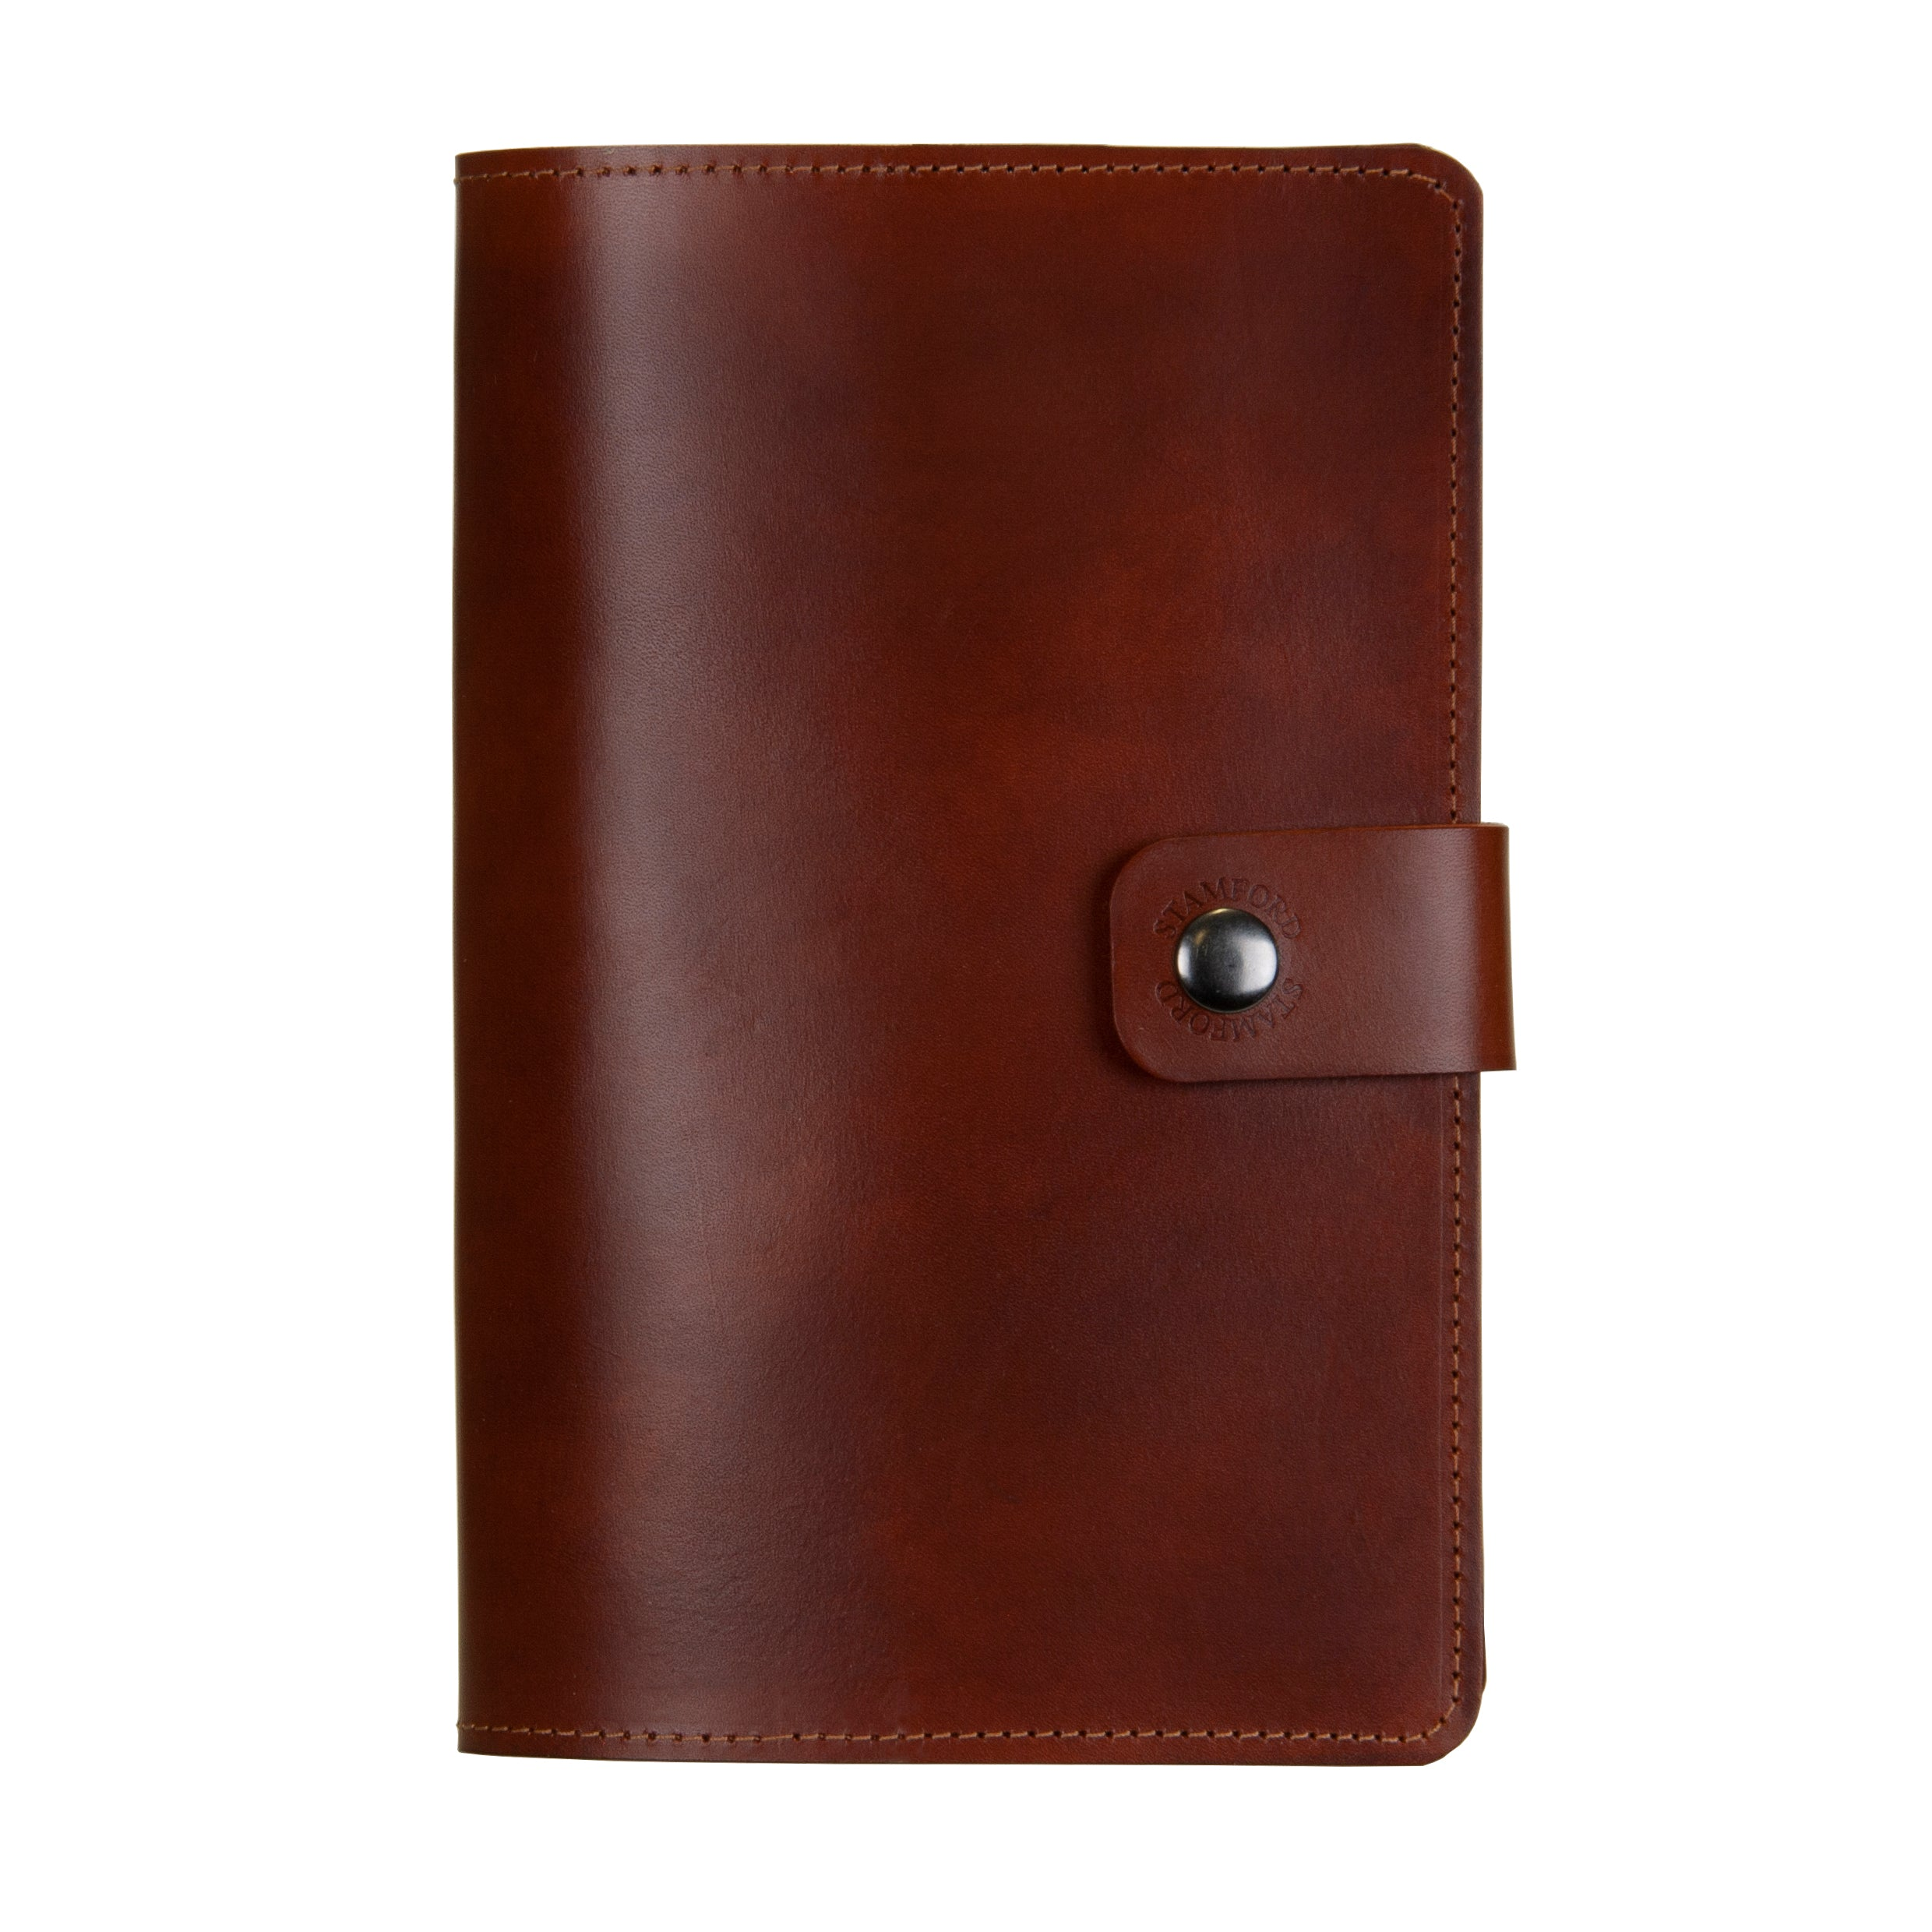 Mid Brown Leather Burghley Organiser